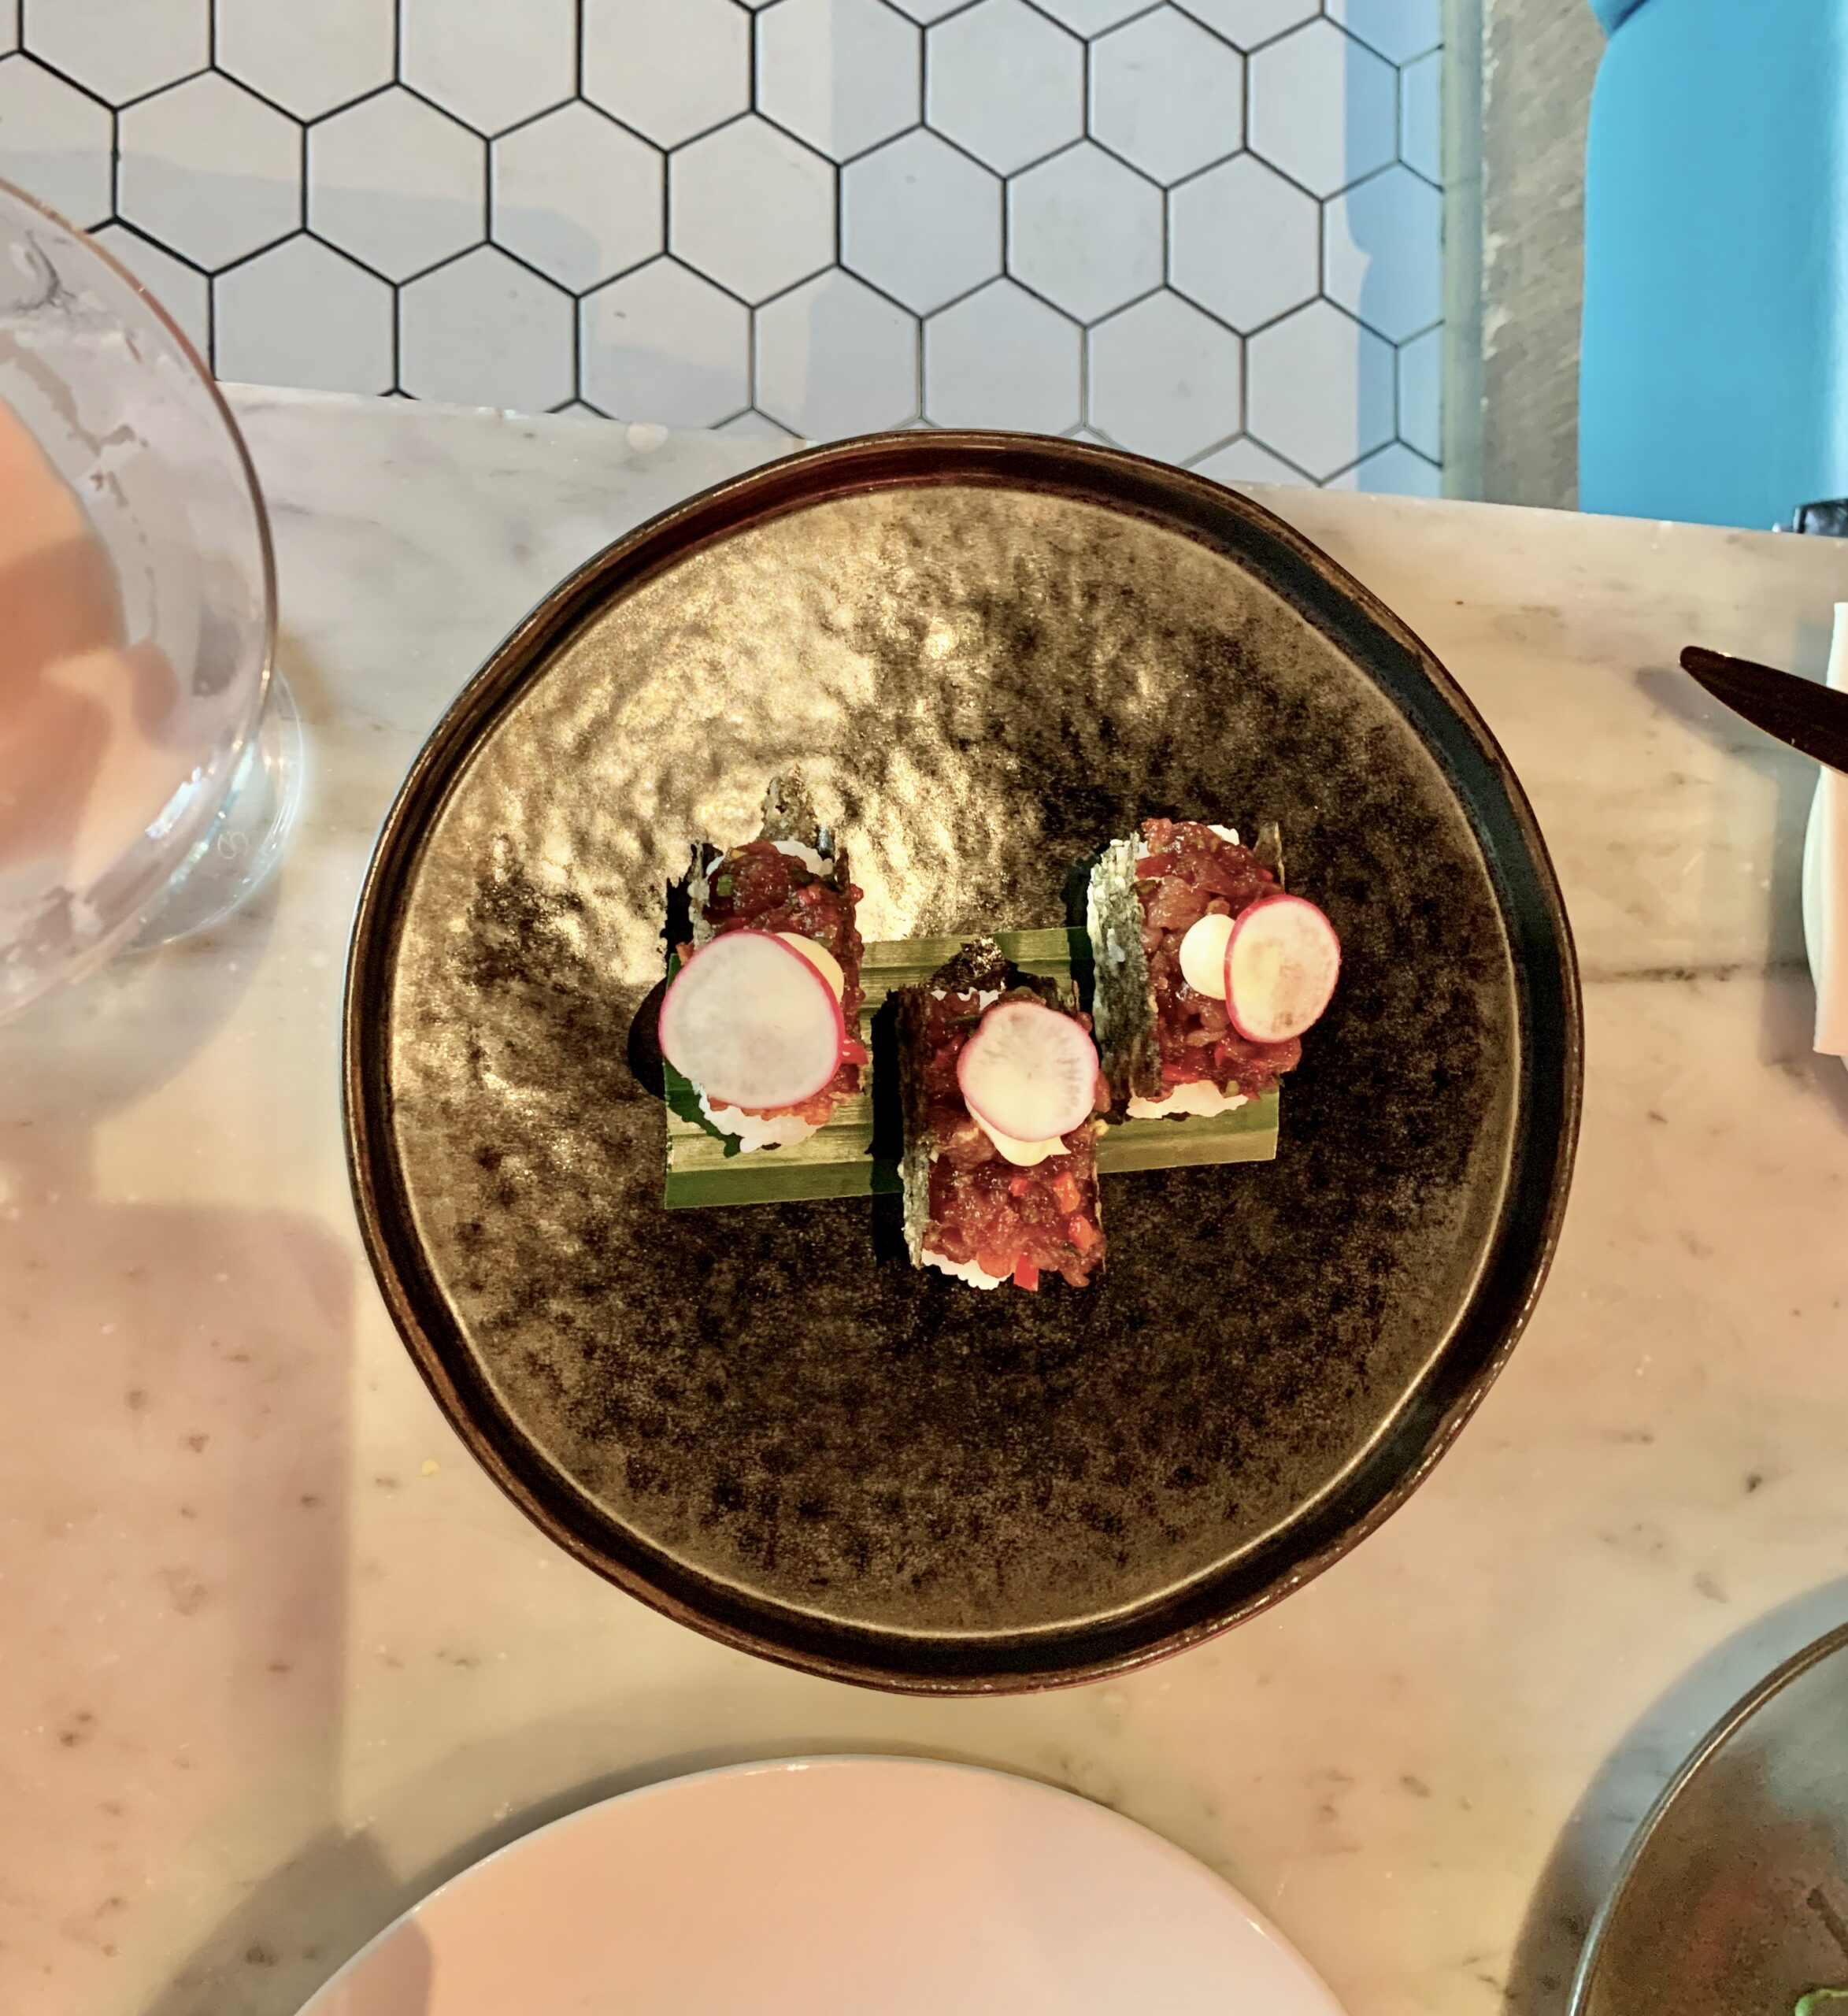 Menagerie Manchester - Tuna tacos presented beautifully and stuffed with sashimi grade tuna tartare (£8.50 for 3)